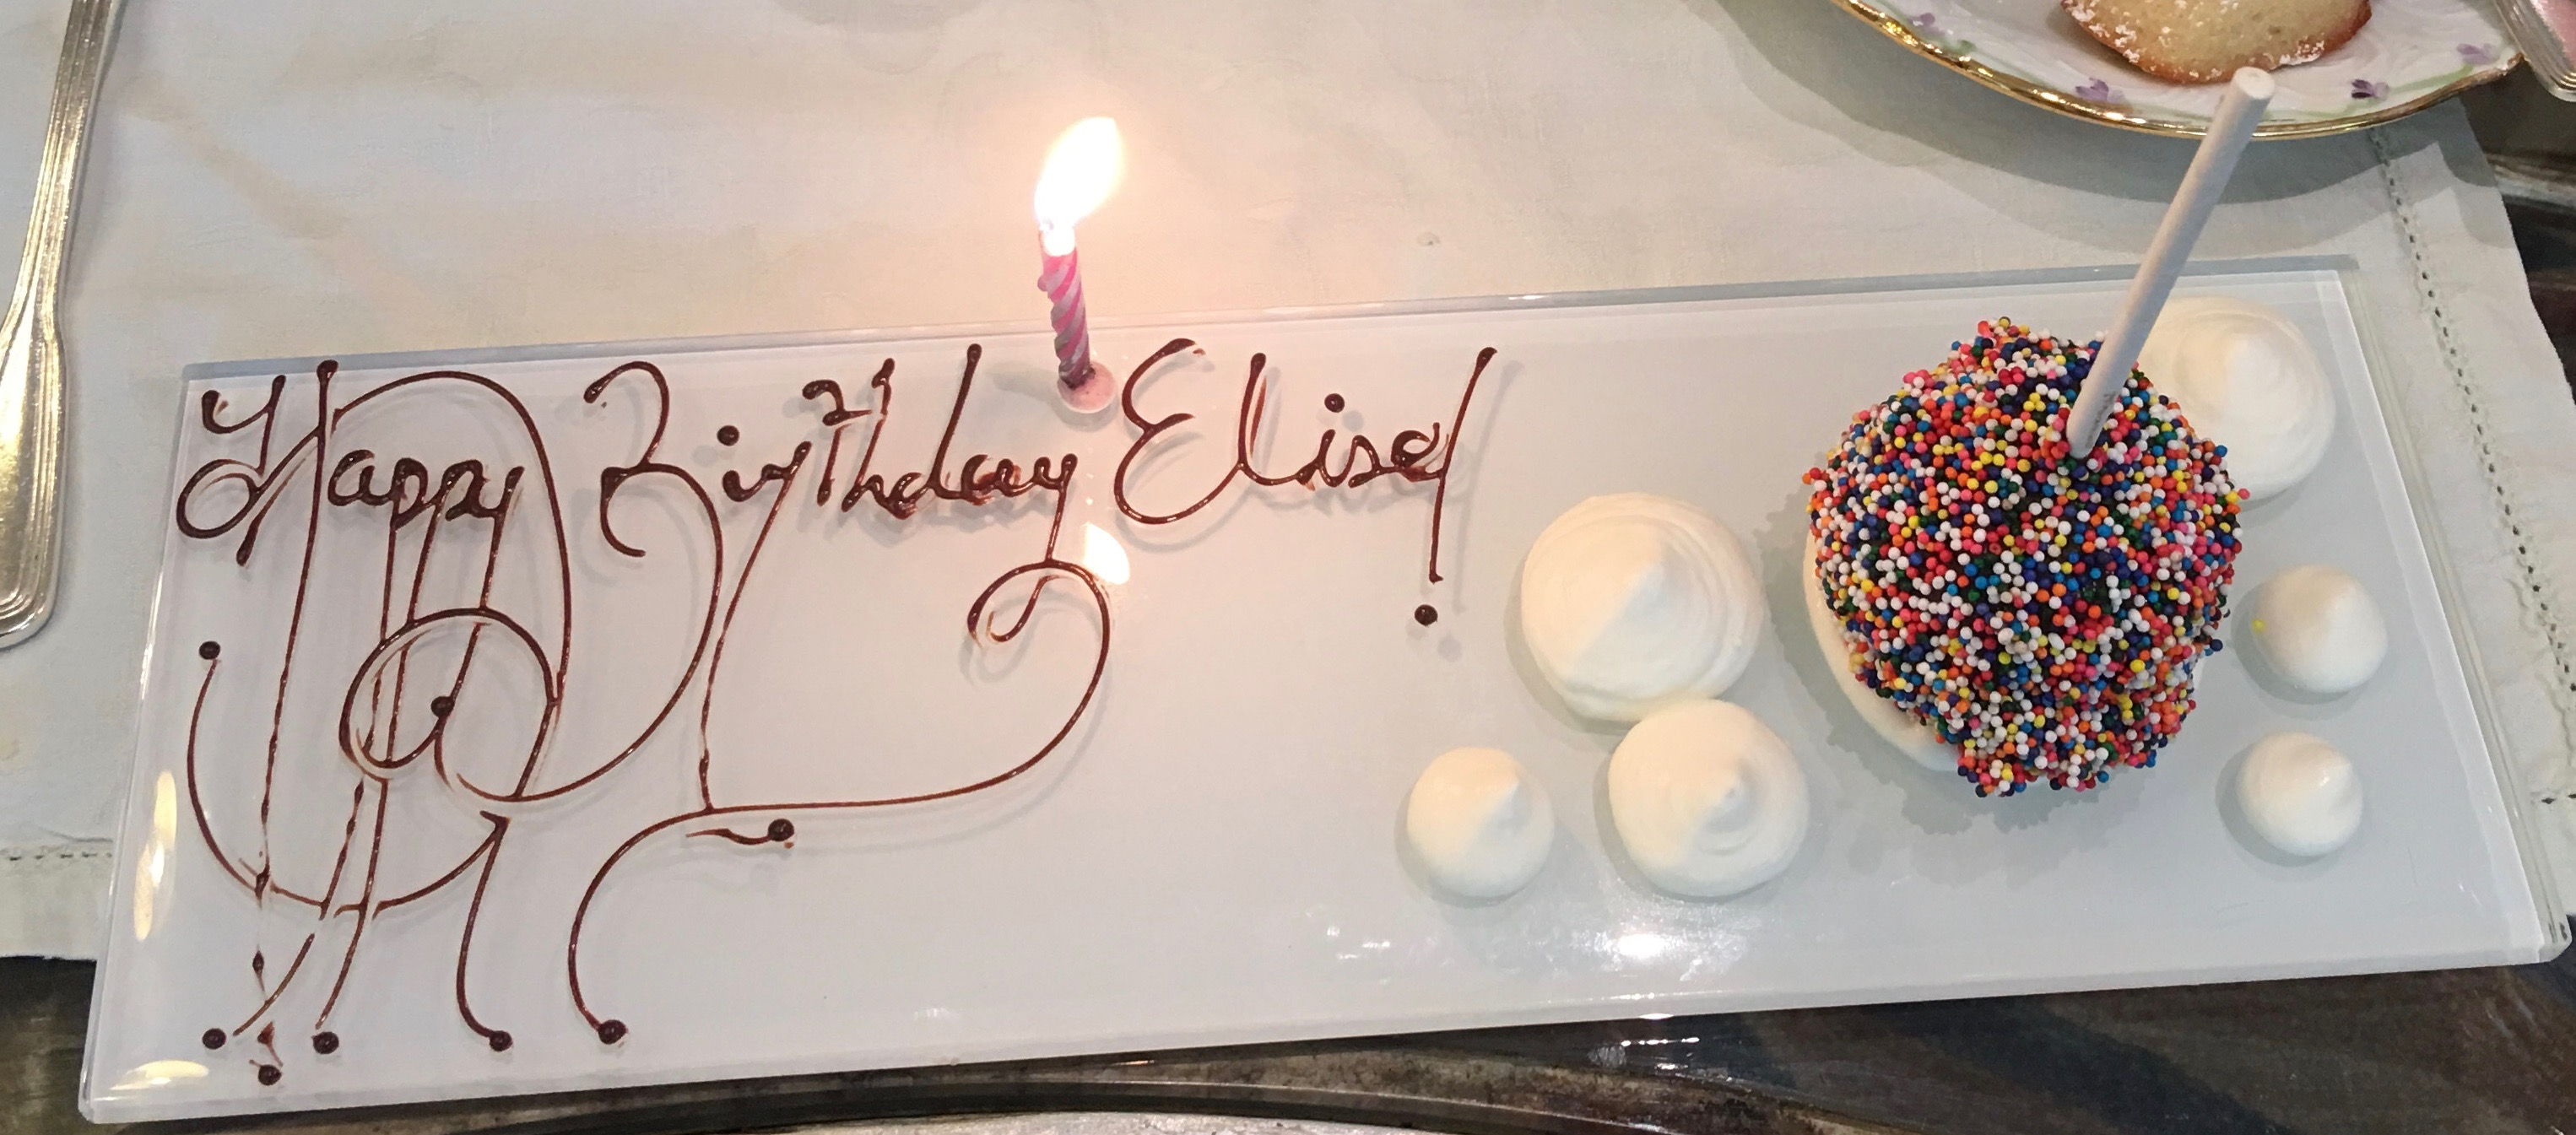 10 Great Things To Do On Your Birthday In Los Angeles Elise Ballard